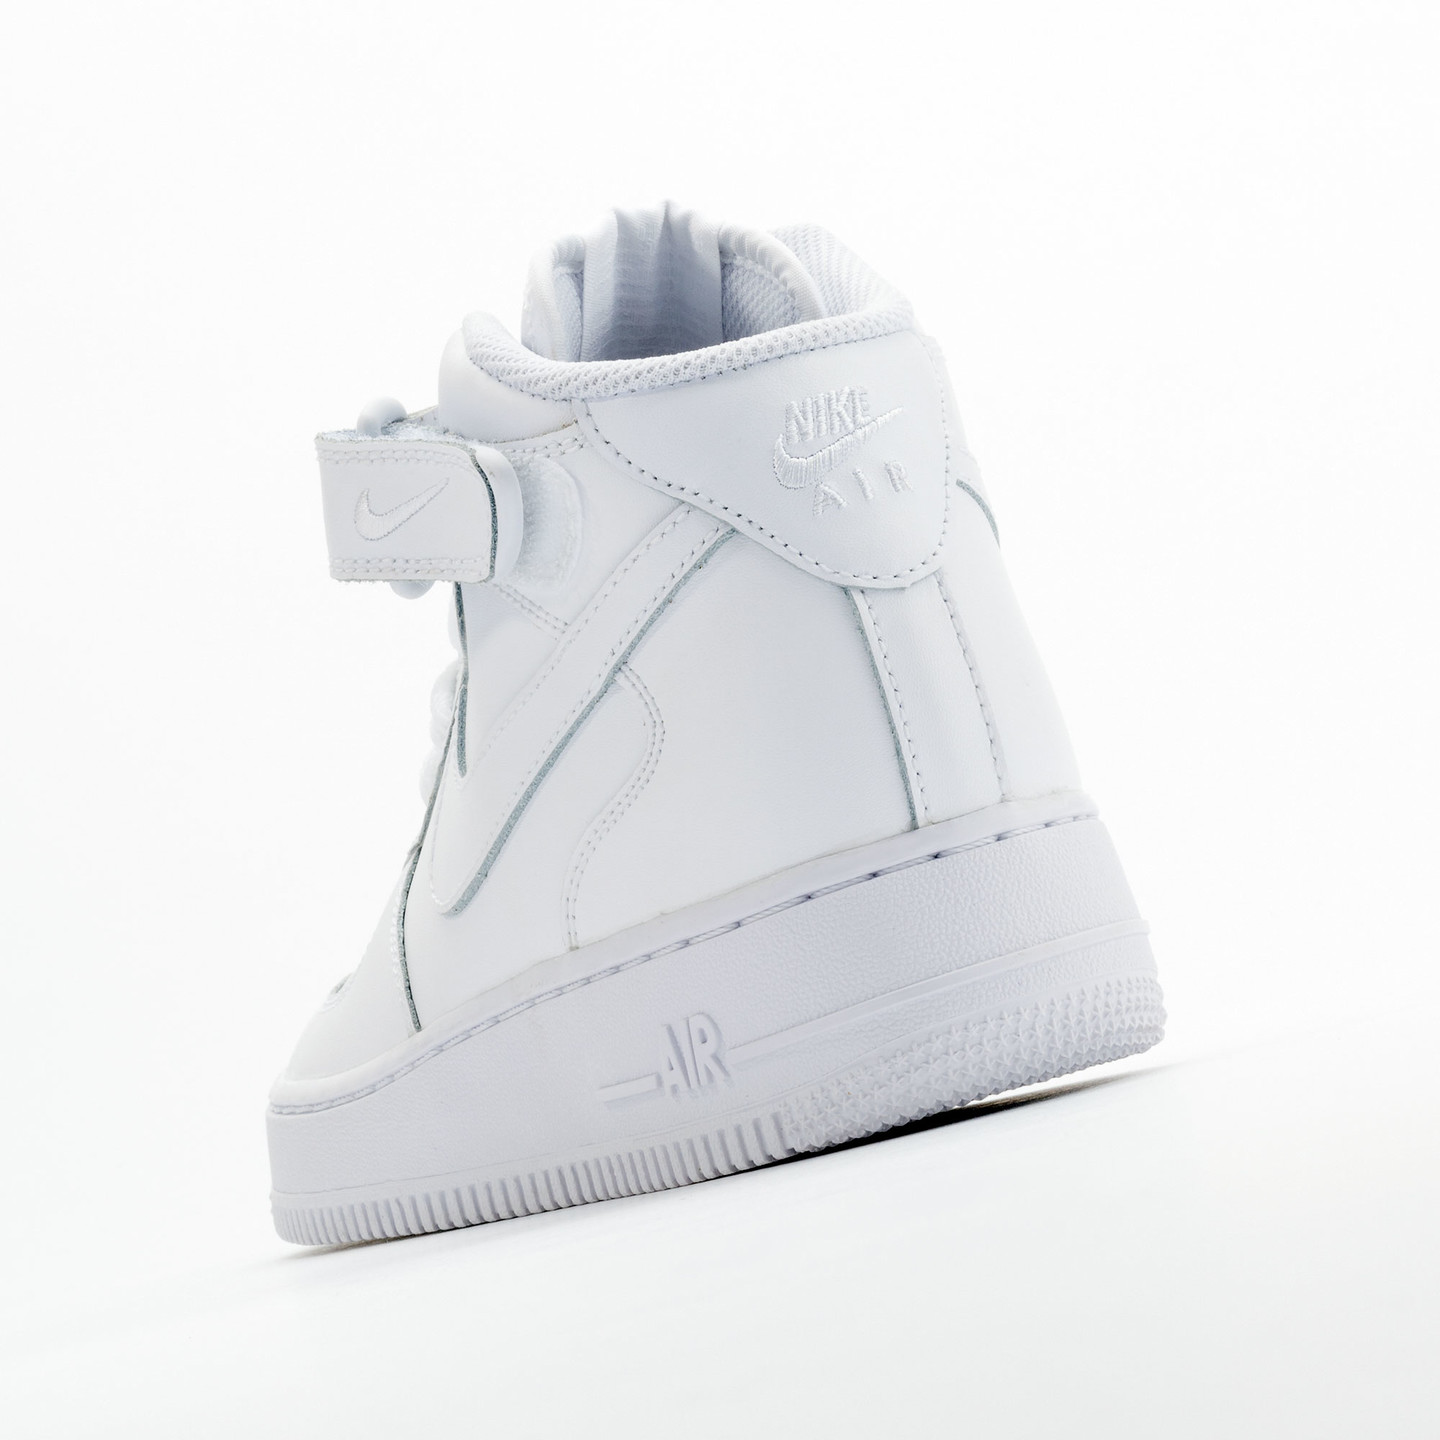 Nike Air Force 1 Mid GS White / White 314195-113-37.5